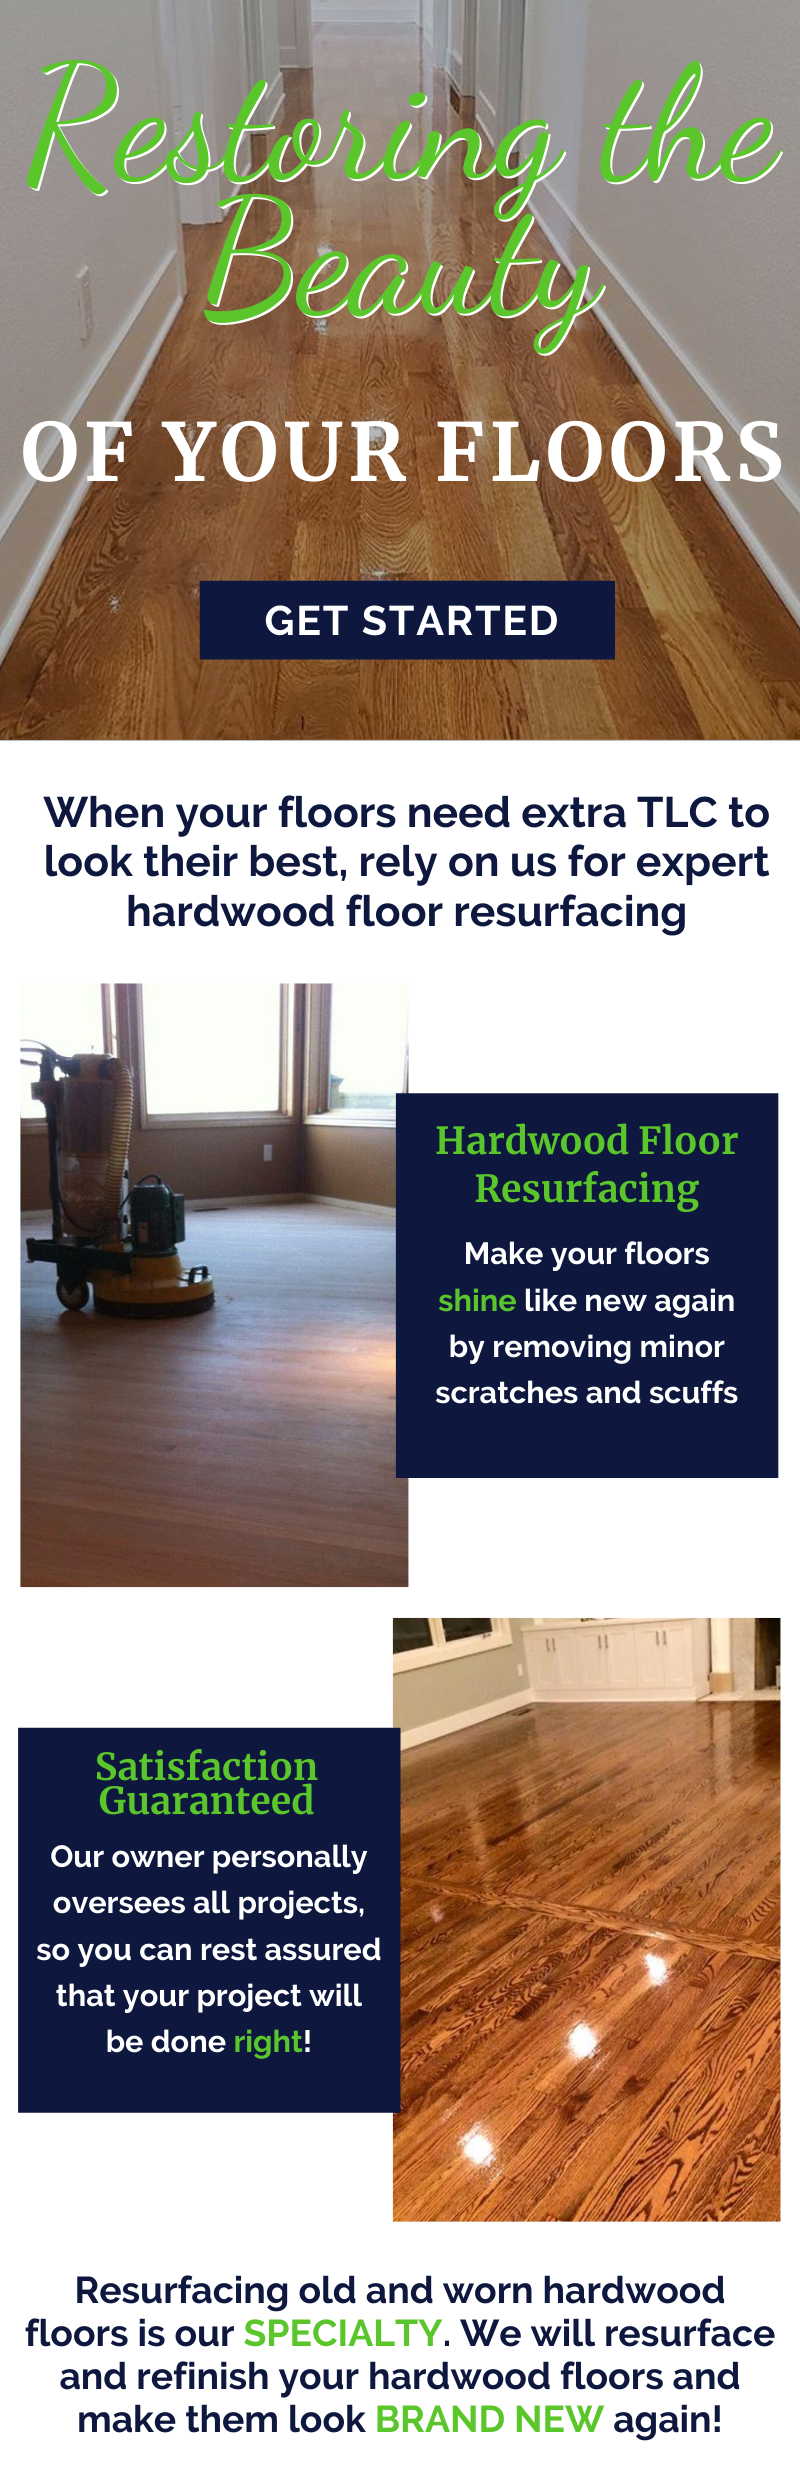 restoring the beauty of your floors